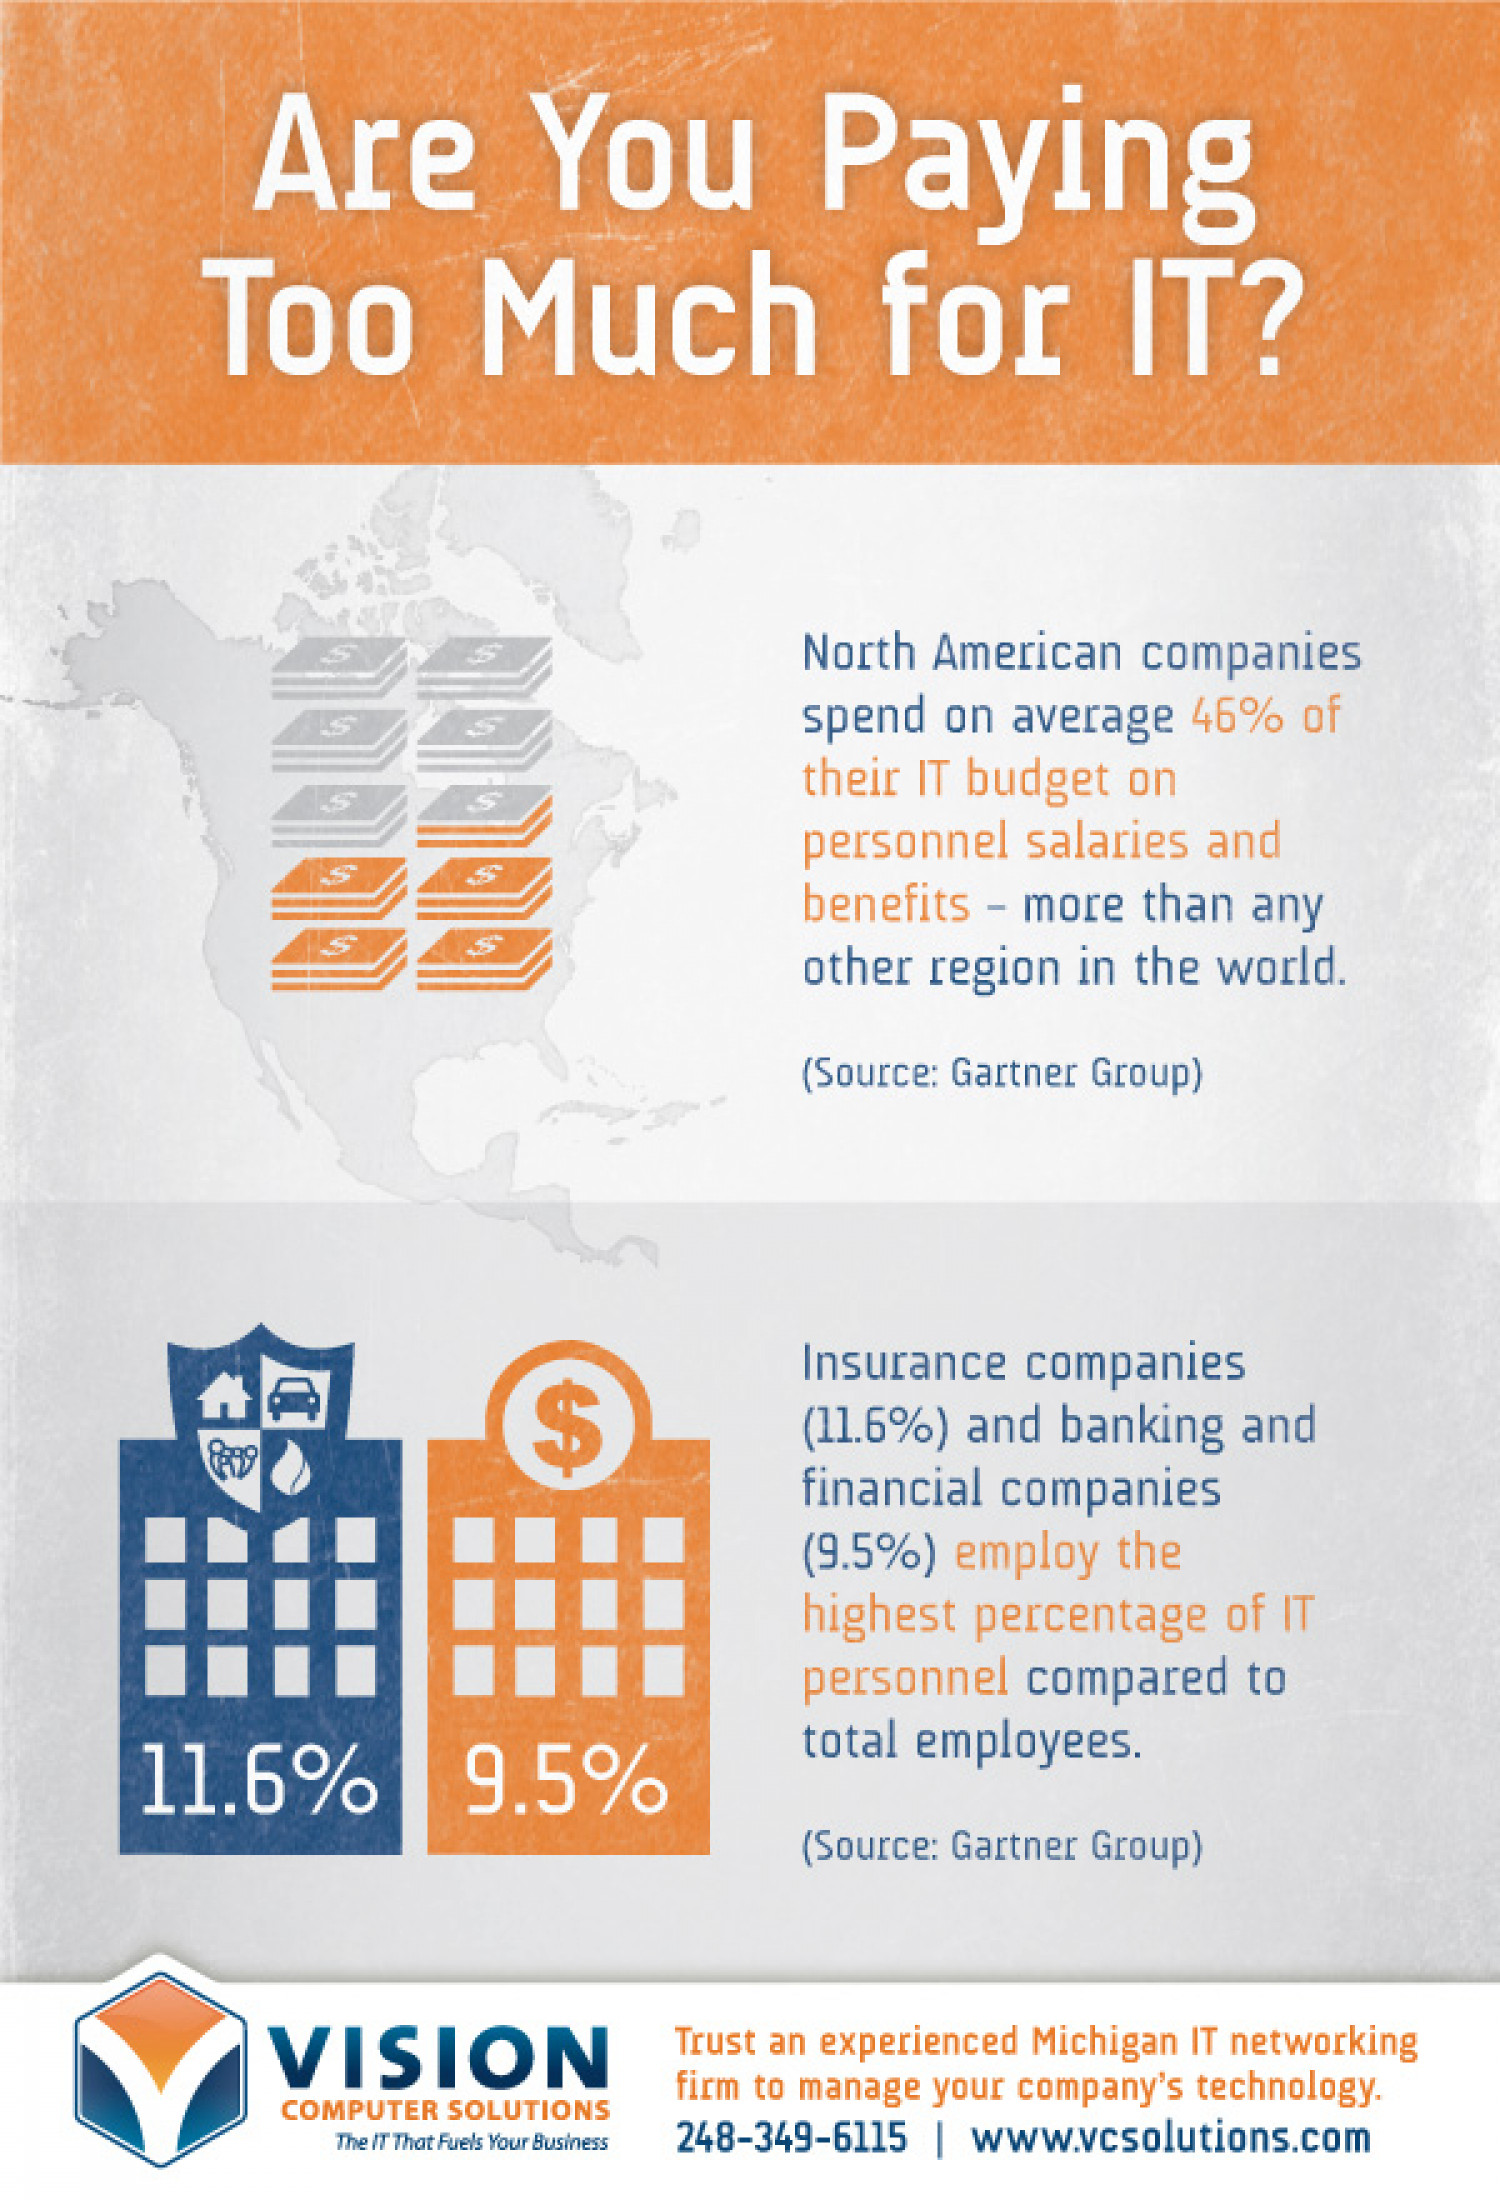 Are You Paying Too Much for IT? Infographic